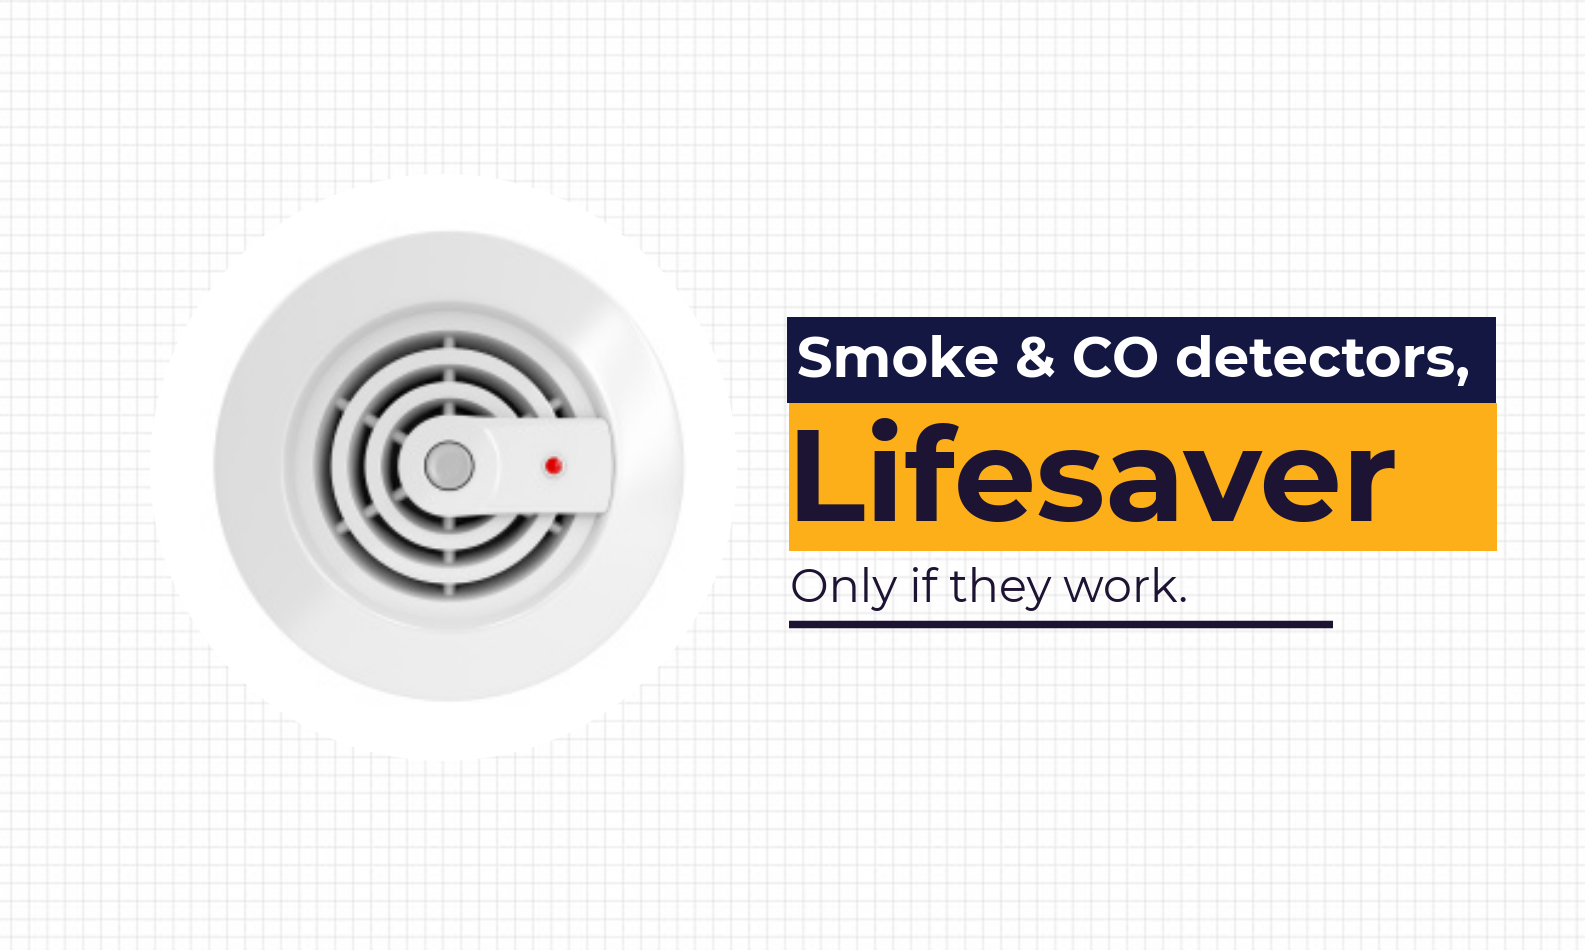 Smoke & CO detectors lifesaver, only if they work